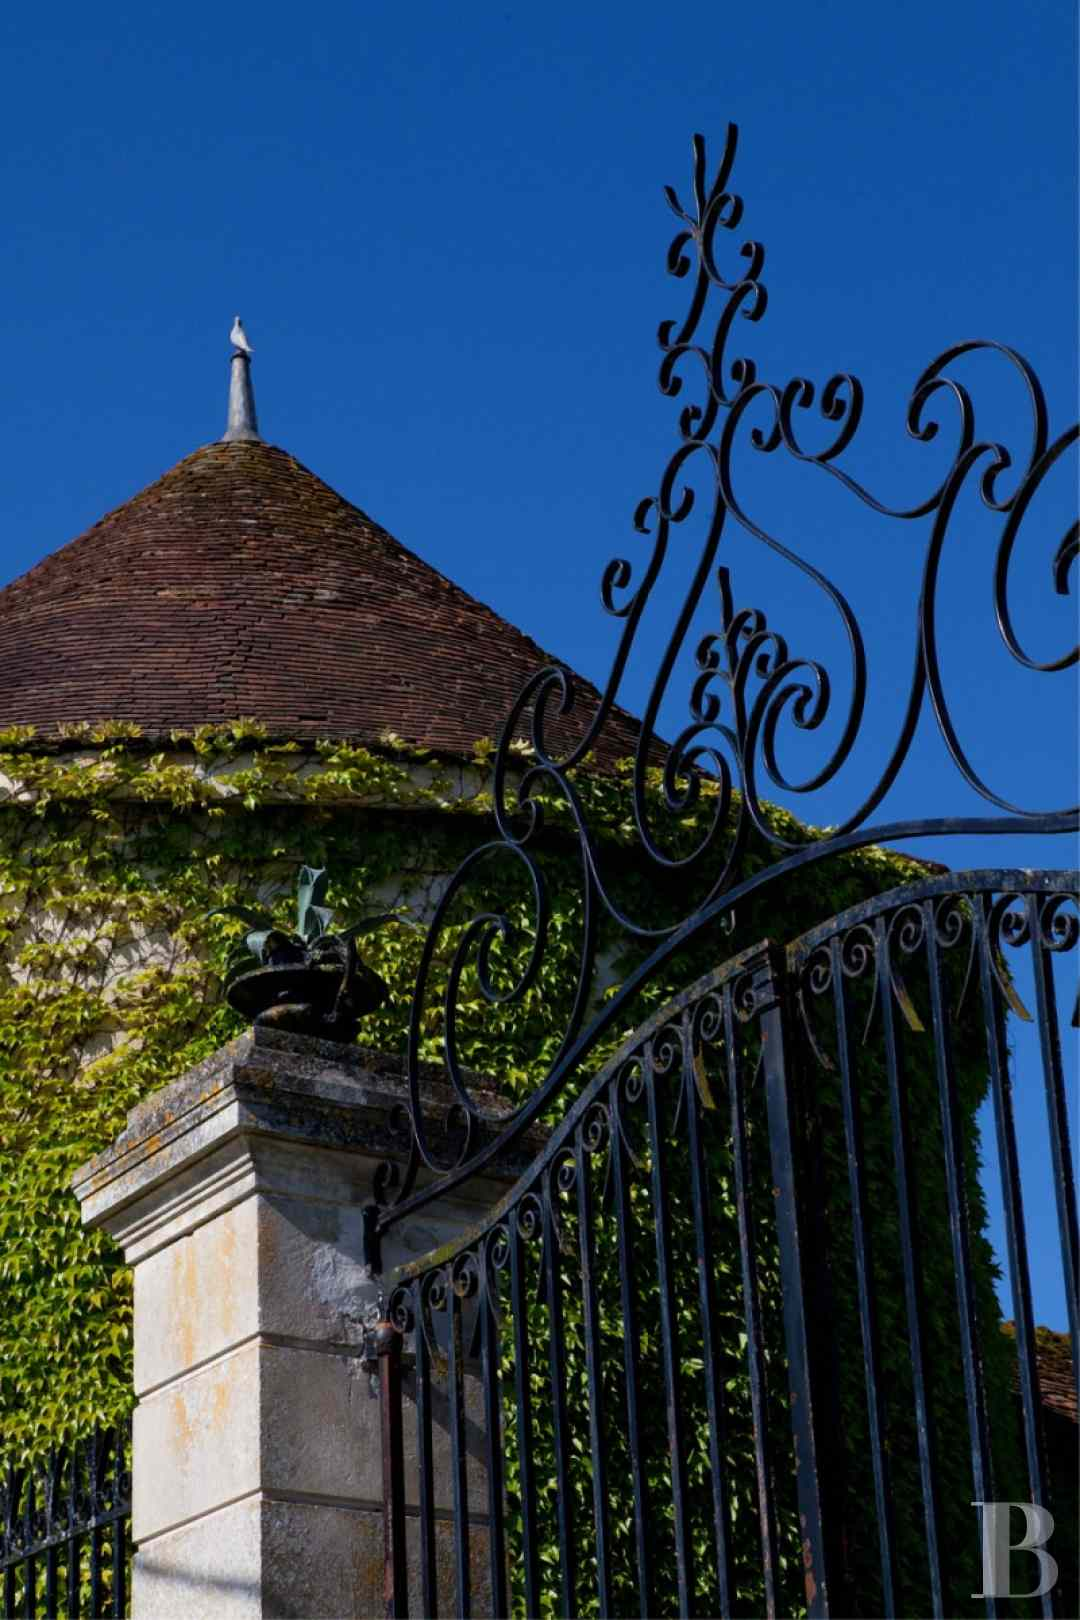 chateaux for sale France burgundy 3782  - 22 zoom